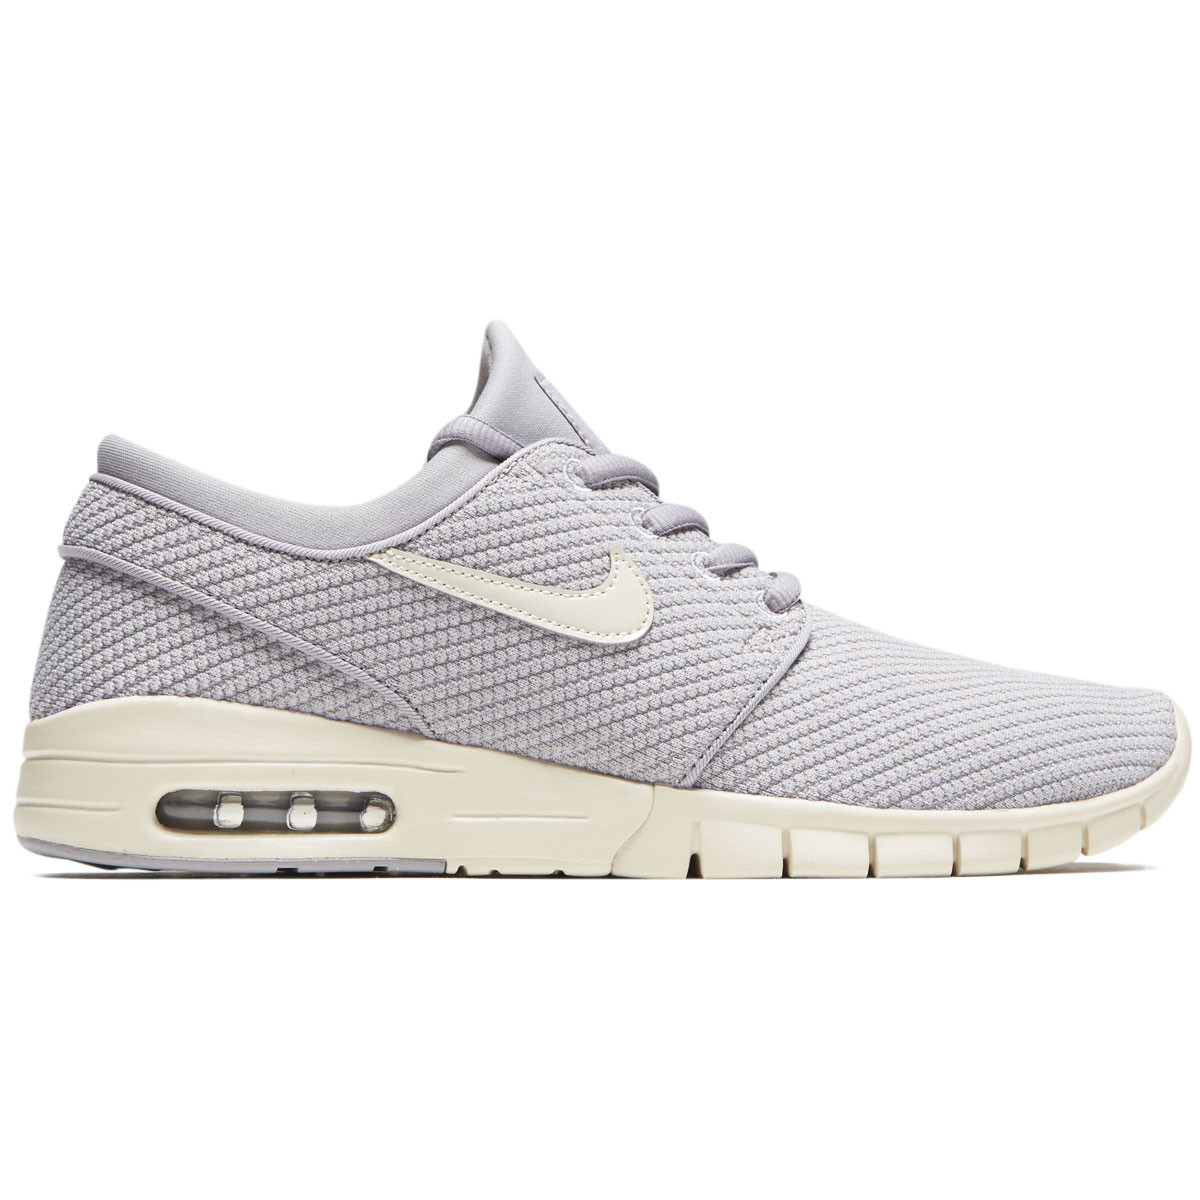 8484b7b9bc23 Nike Stefan Janoski Max Shoes - Atmosphere Grey Light Cream Light Cream -  6.5